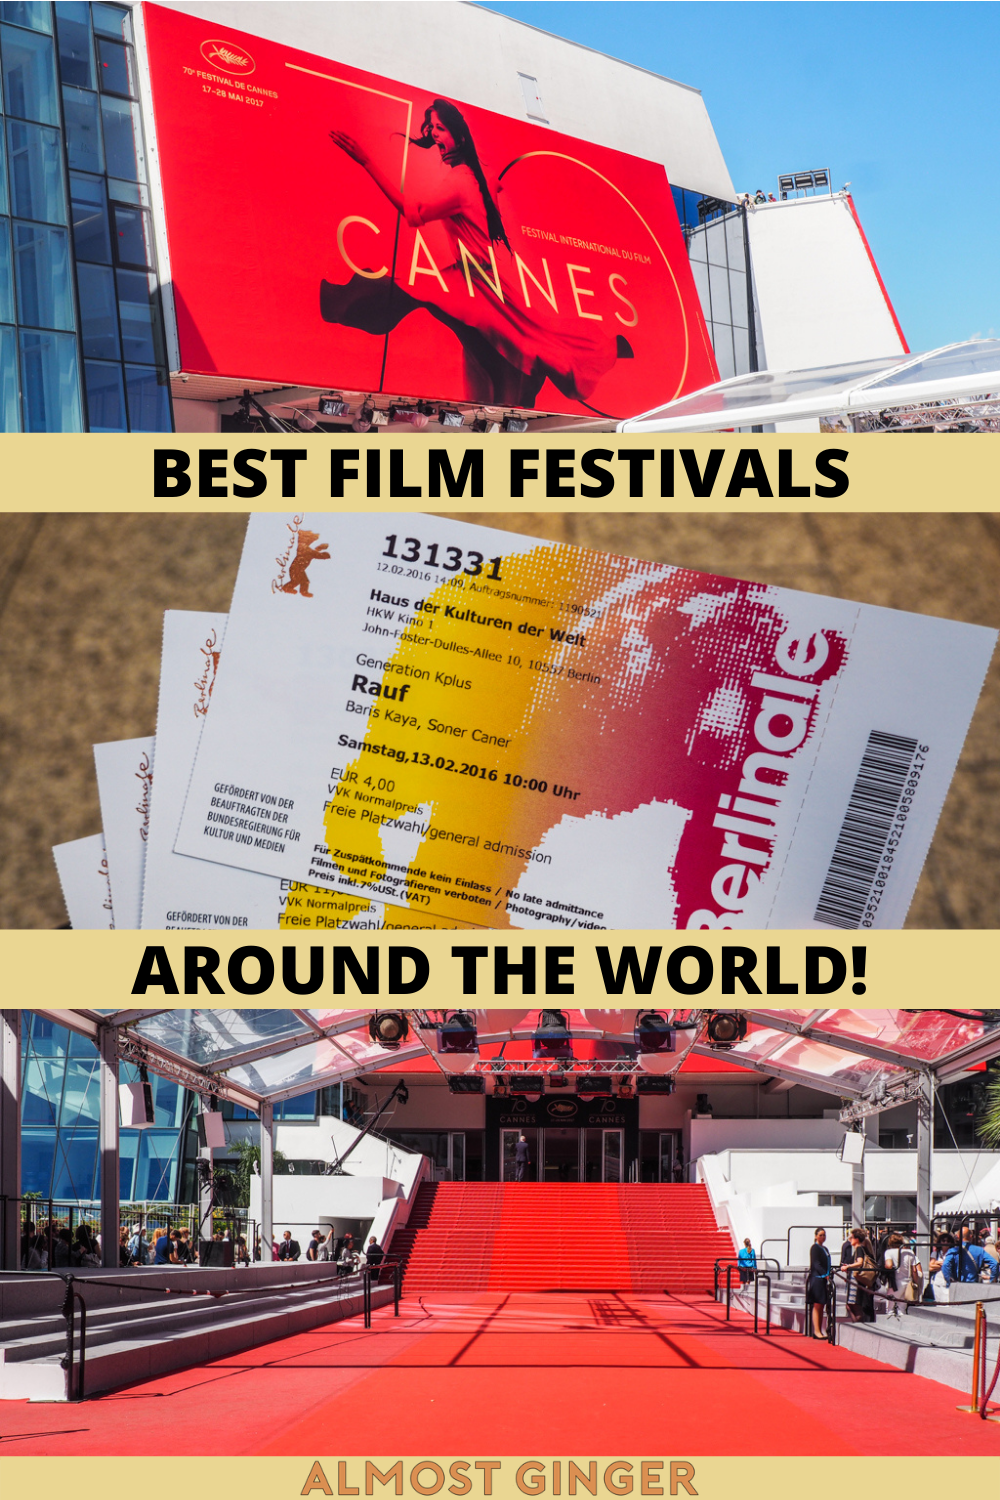 Best Film Festivals in the World for Cinephiles to Attend | almostginger.com